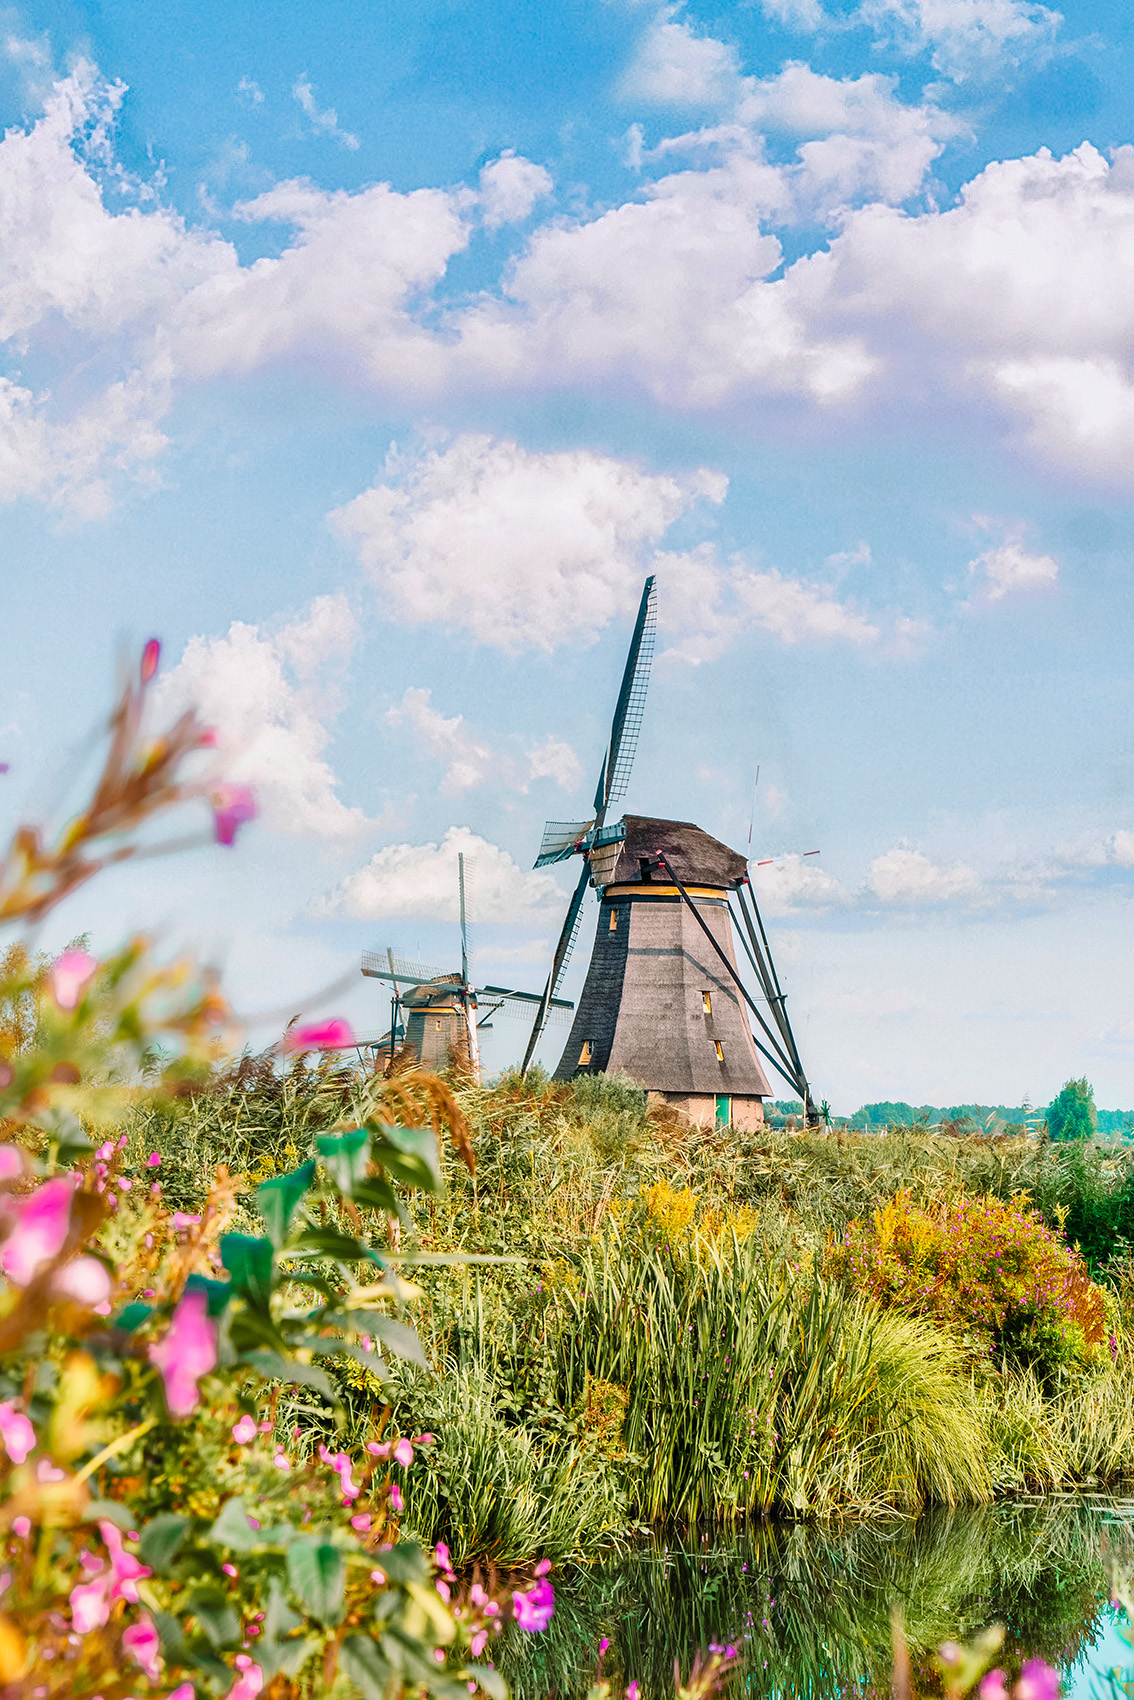 44 The Netherlands you do not expect! Discovering the most authentic places.